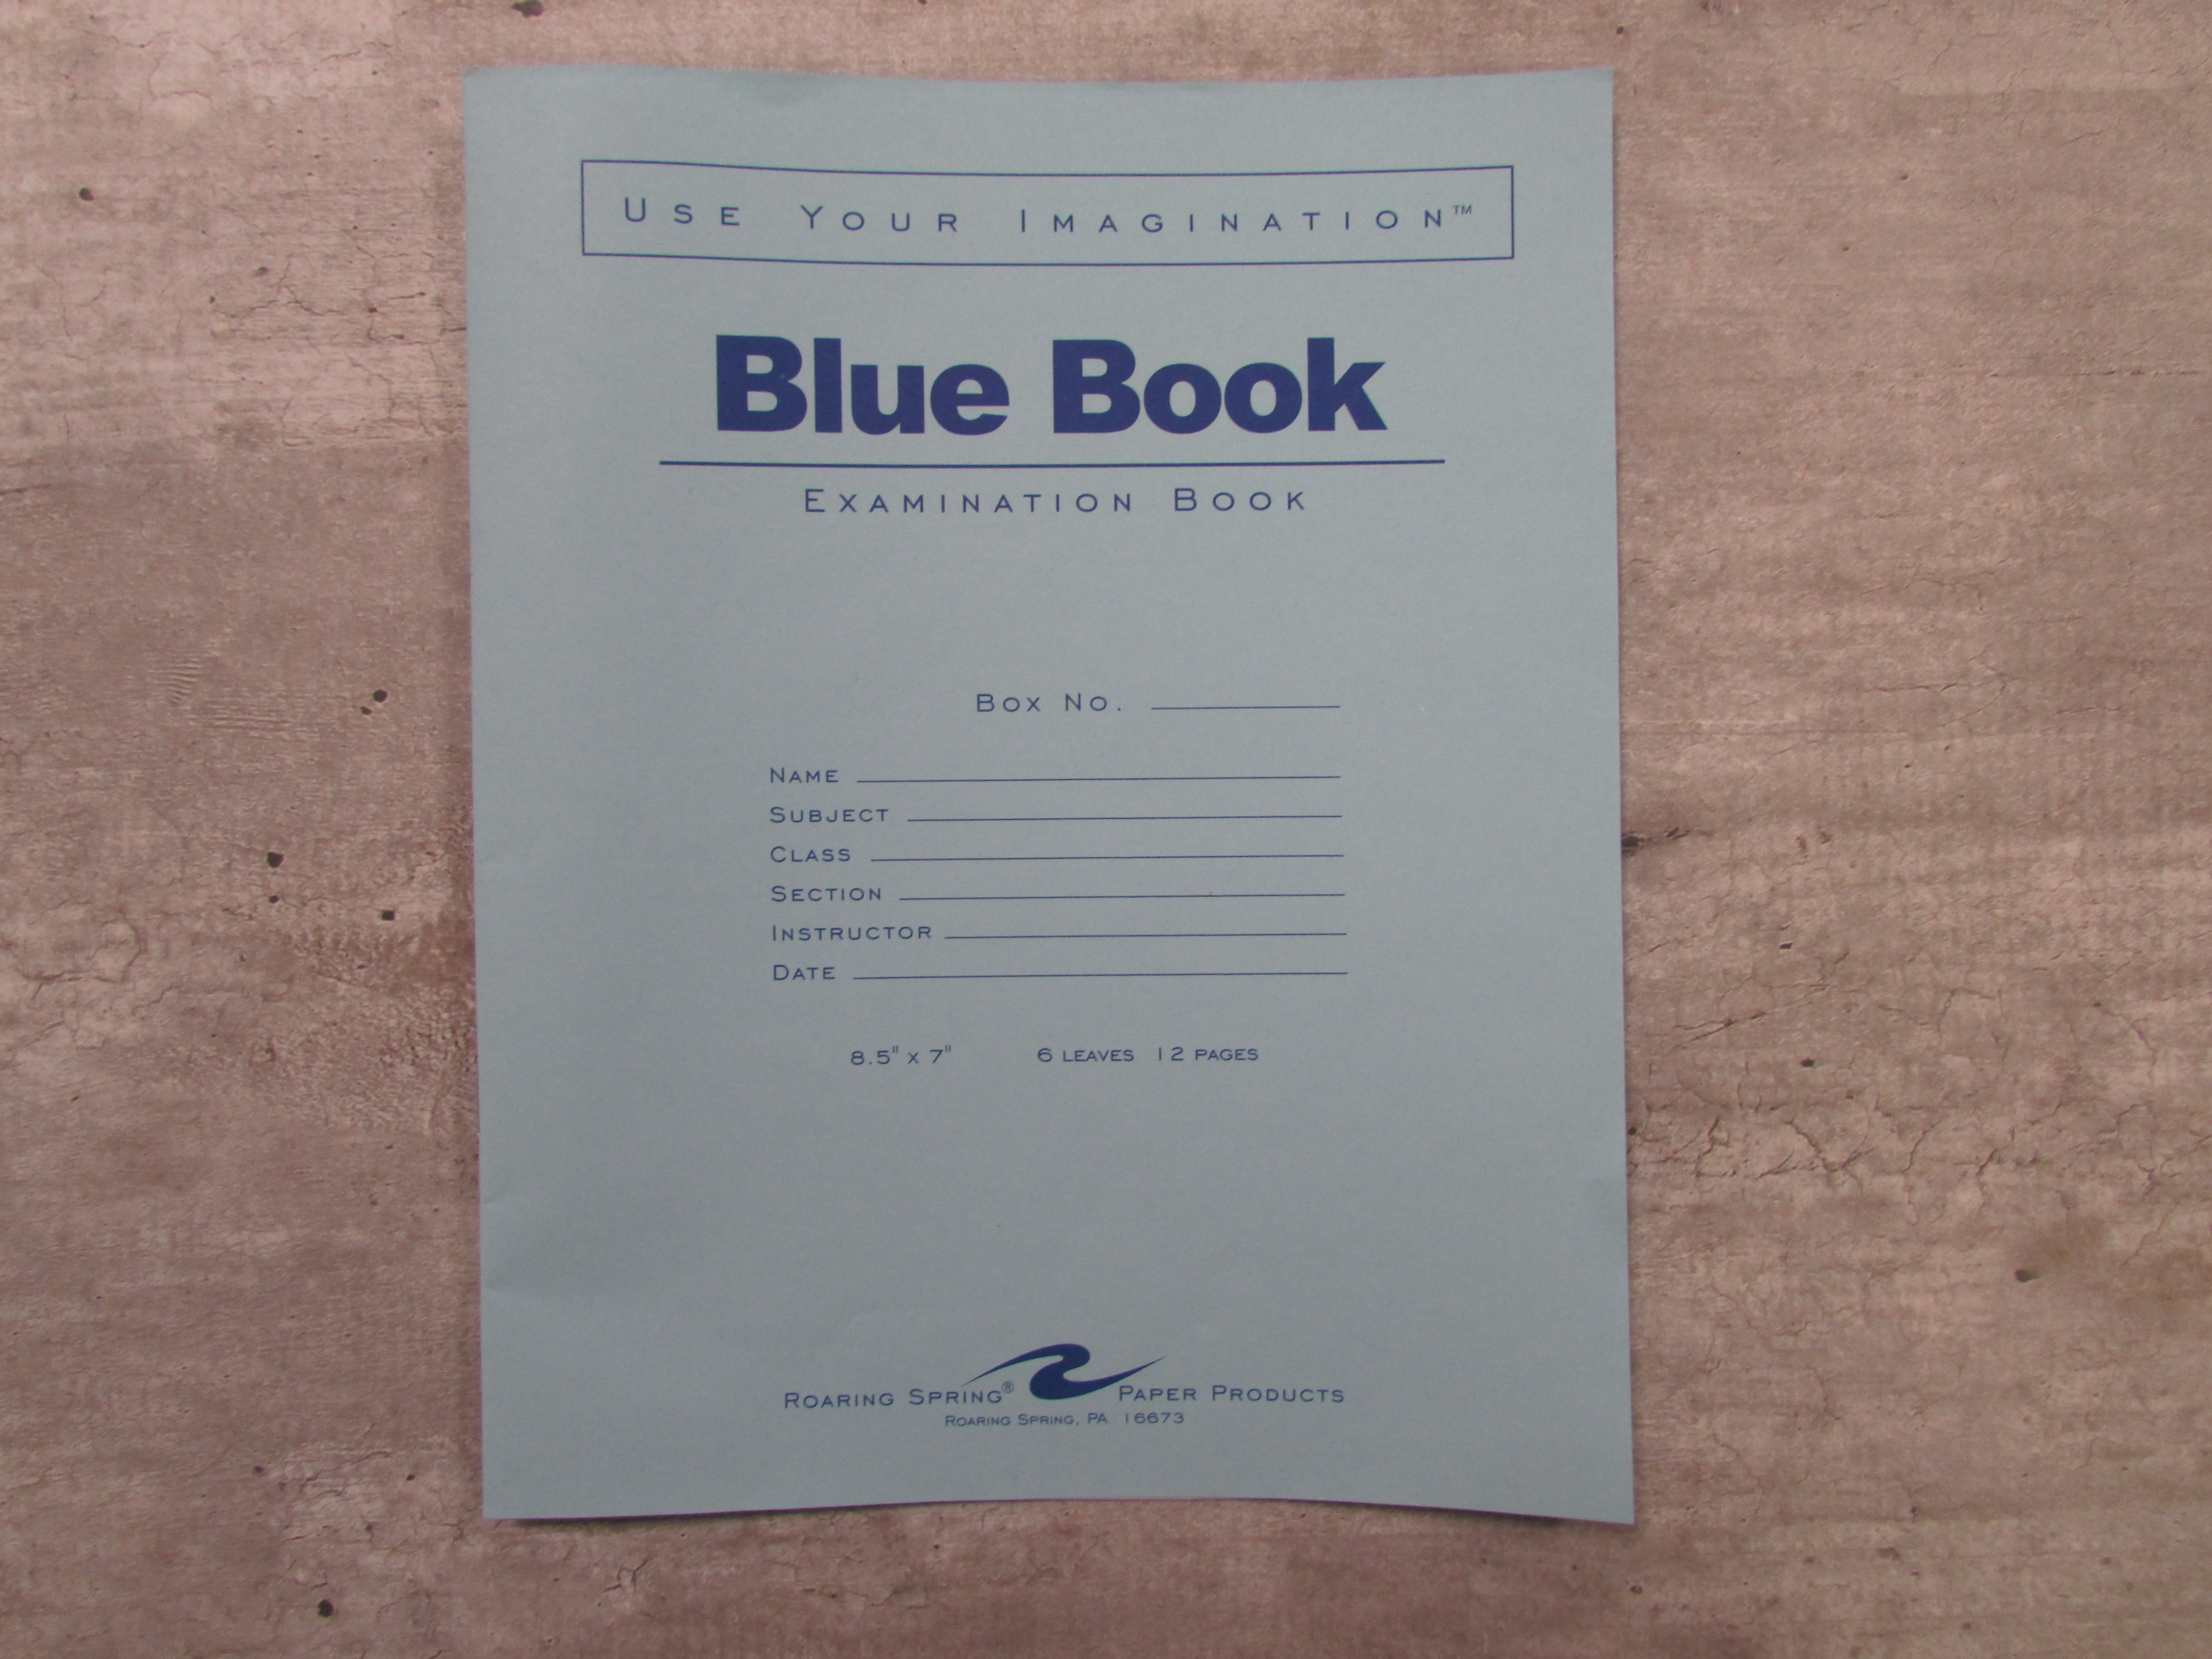 Image for the Blue Book, Small product